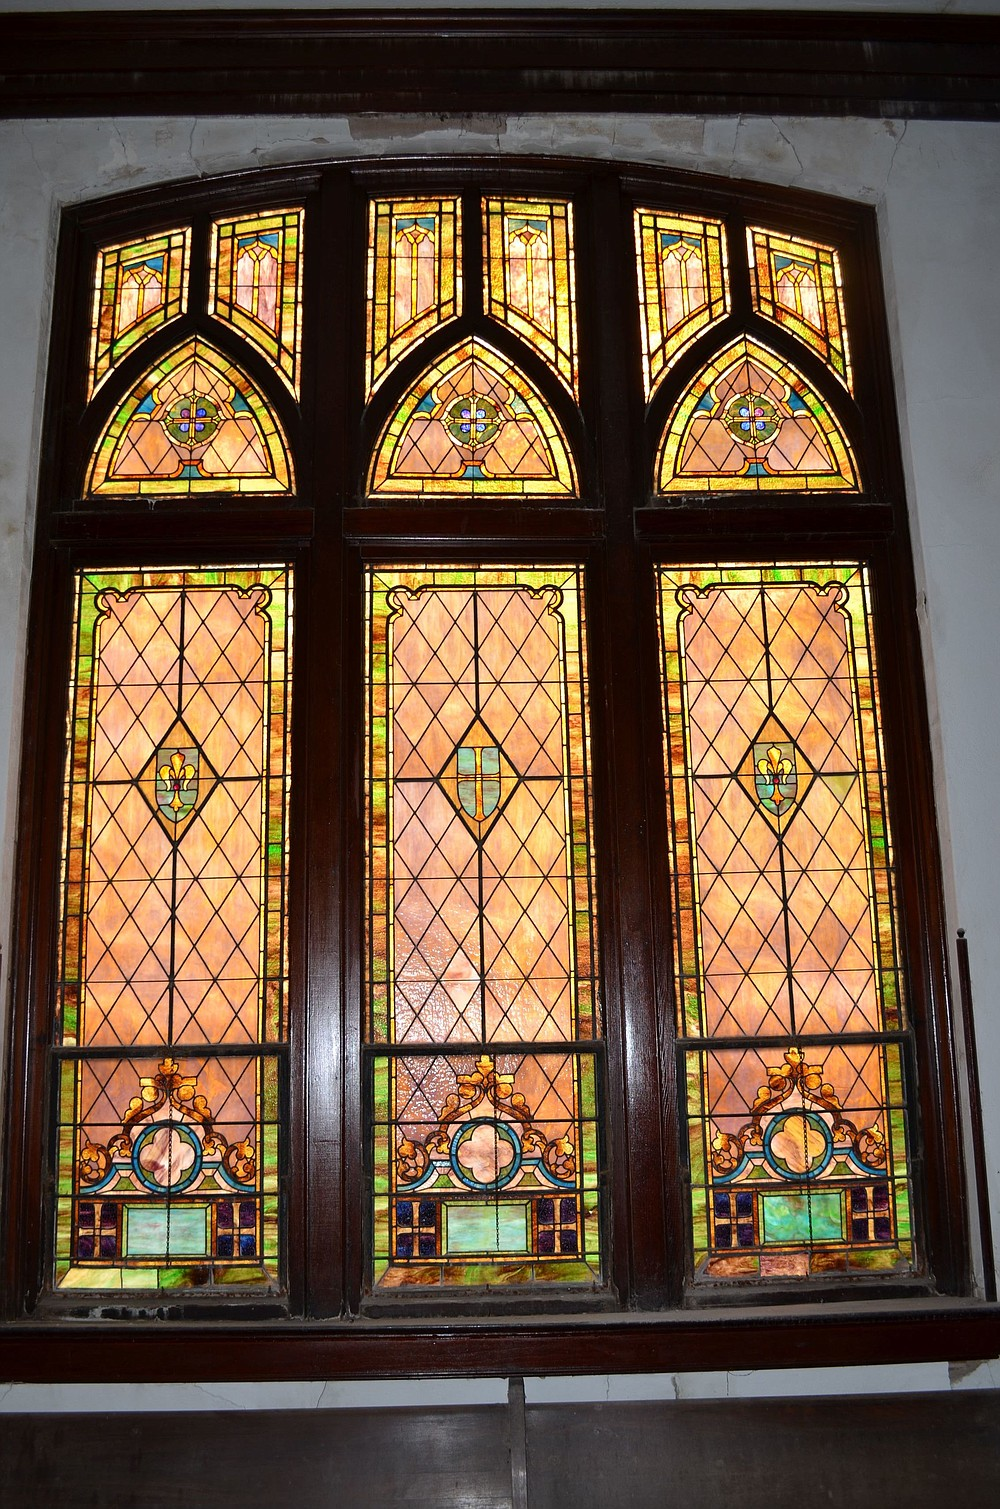 The church's stained glass windows at The Pres were constructed in Venice, Italy. (Special to The Commercial/Richard Ledbetter)